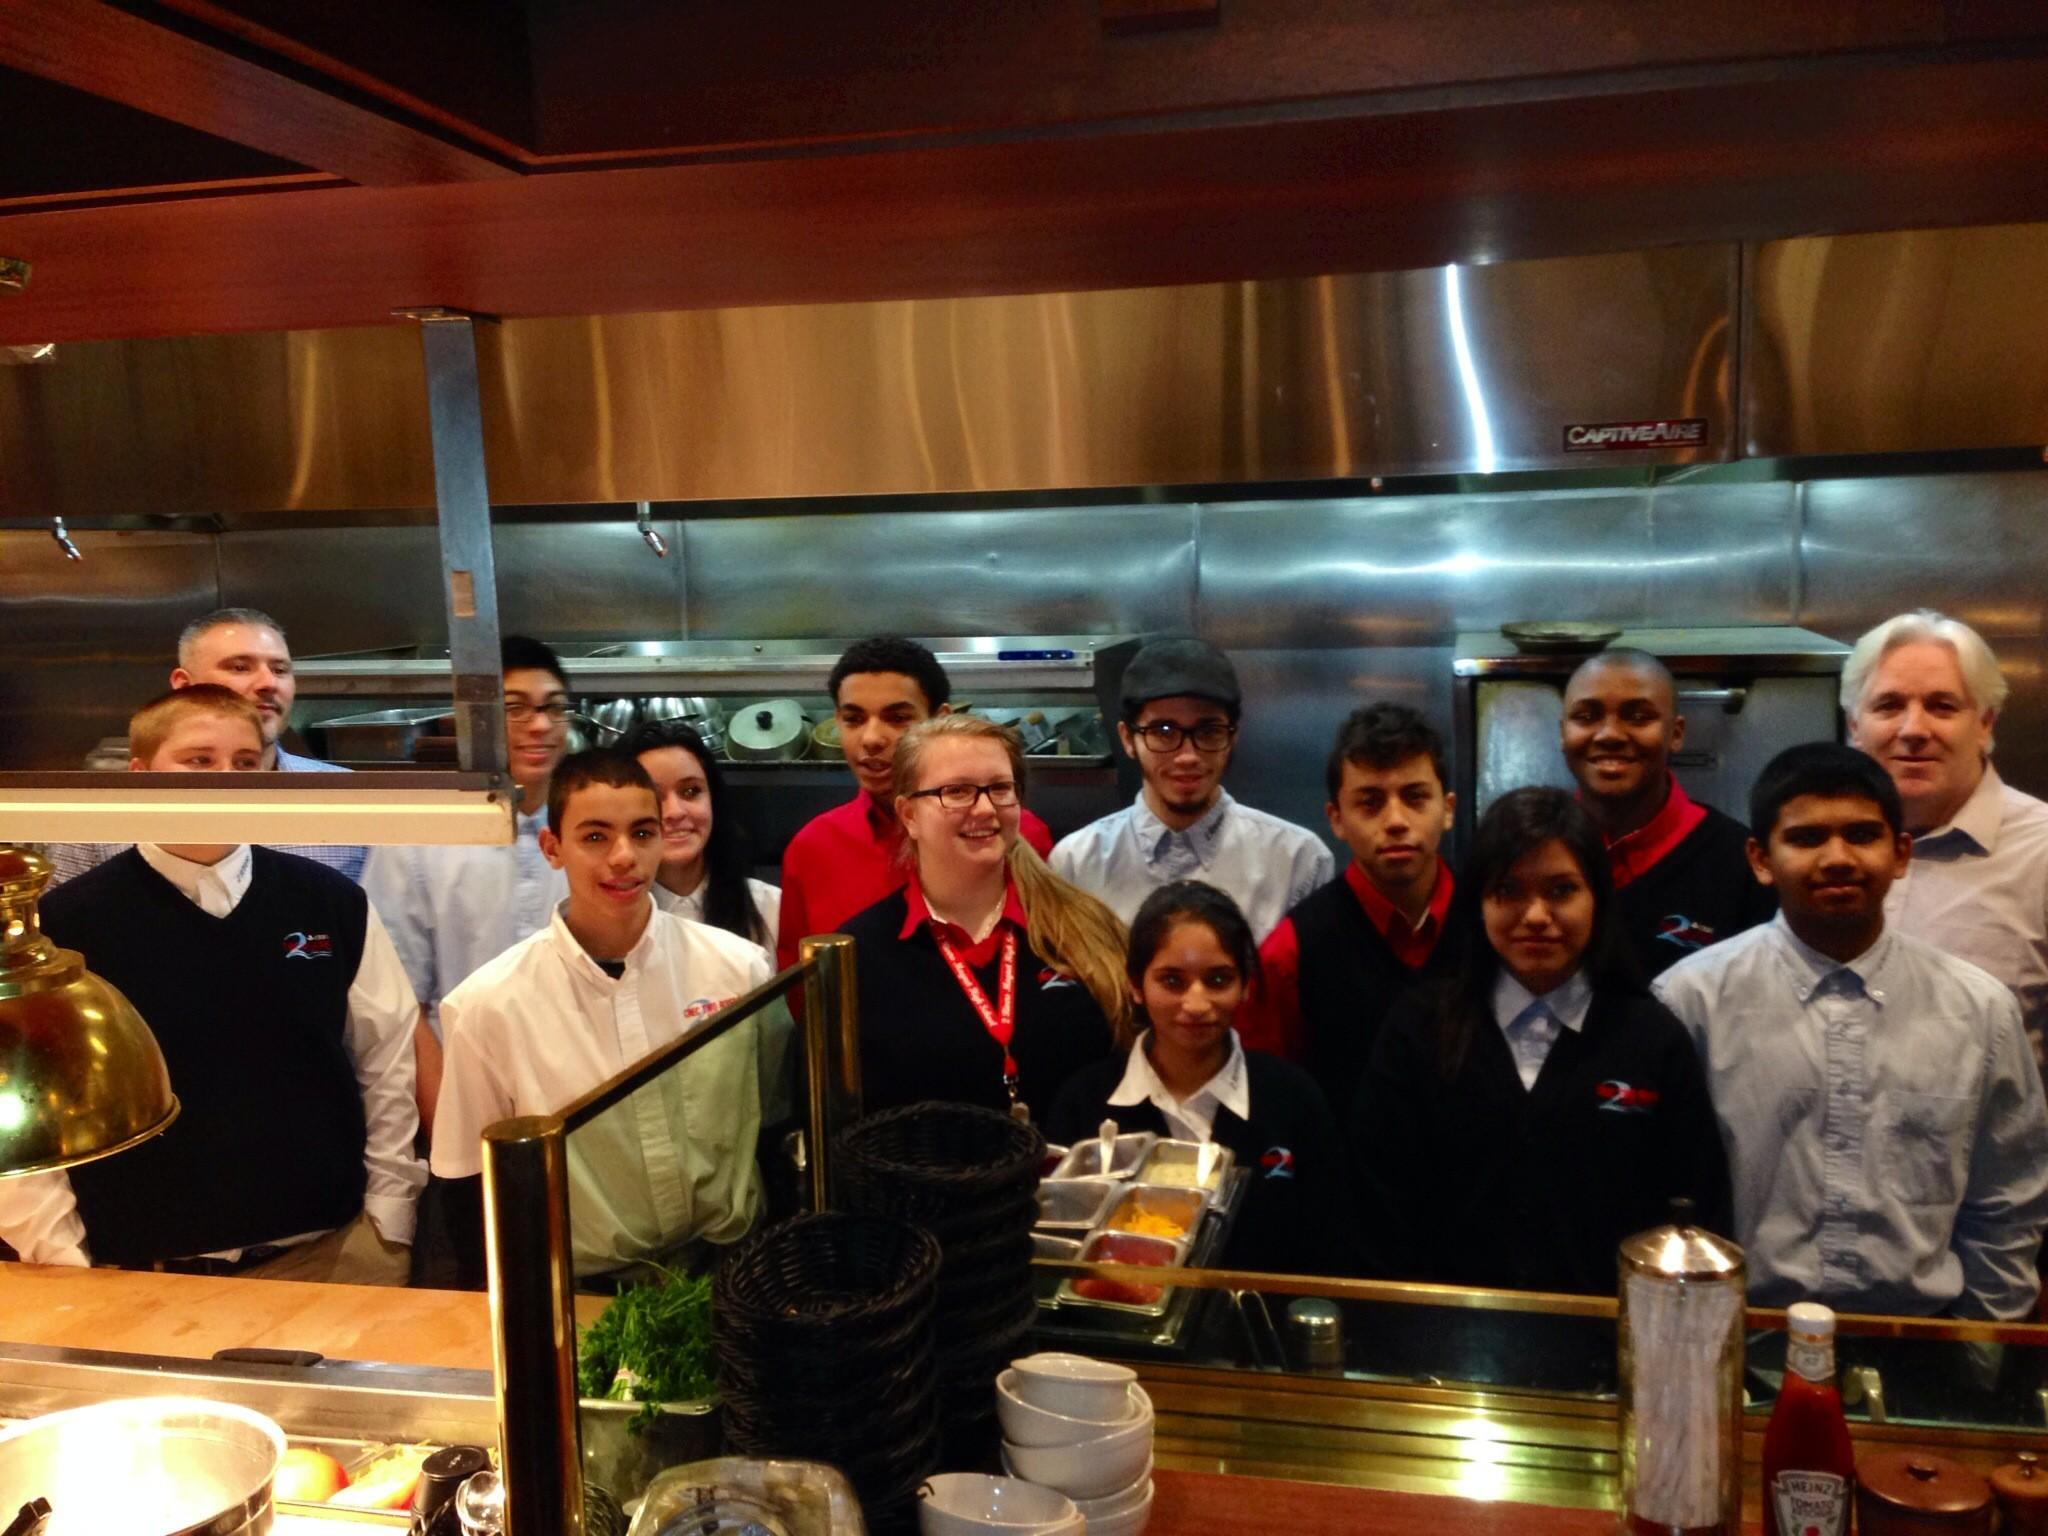 Students from the CREC Two Rivers Magnet High School visit Ted's Montana Grill in South Windsor to learn about the company's history of environmentalism.